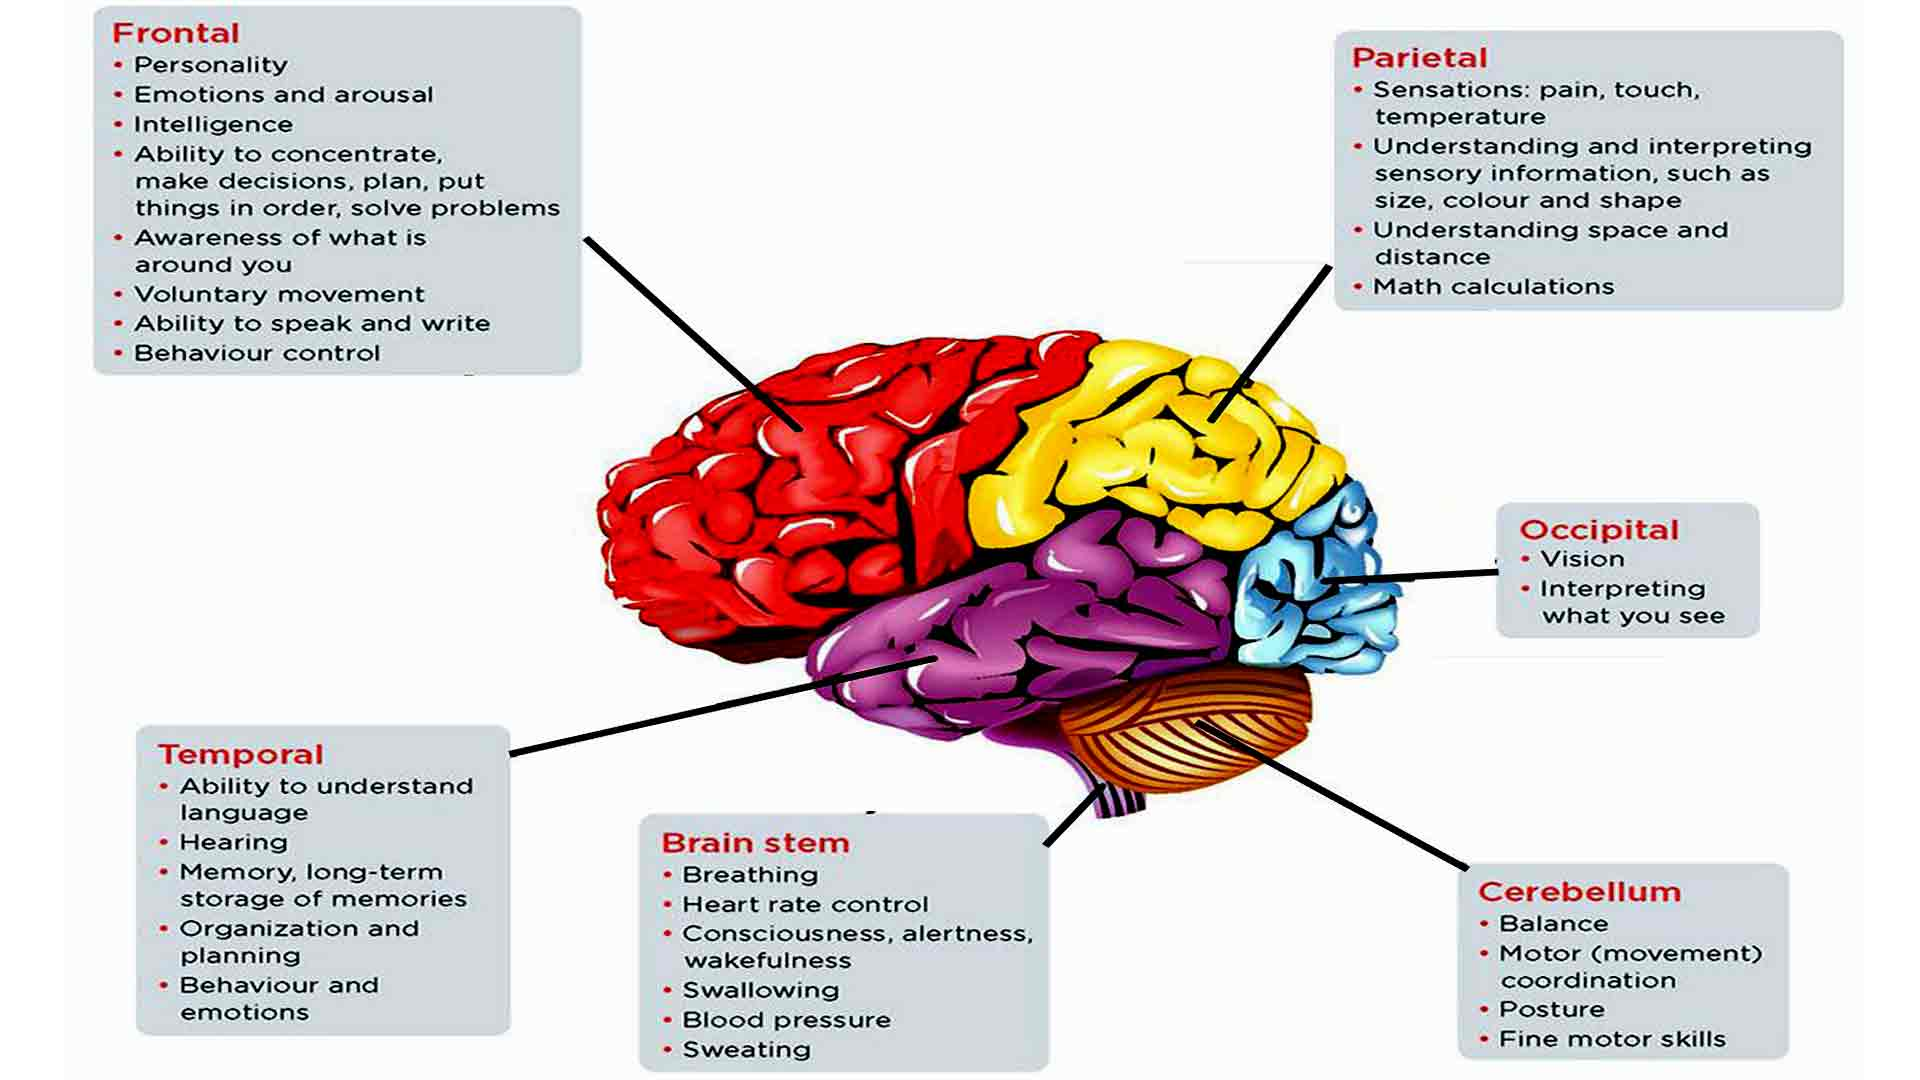 Brain region function changes in pathological states ...